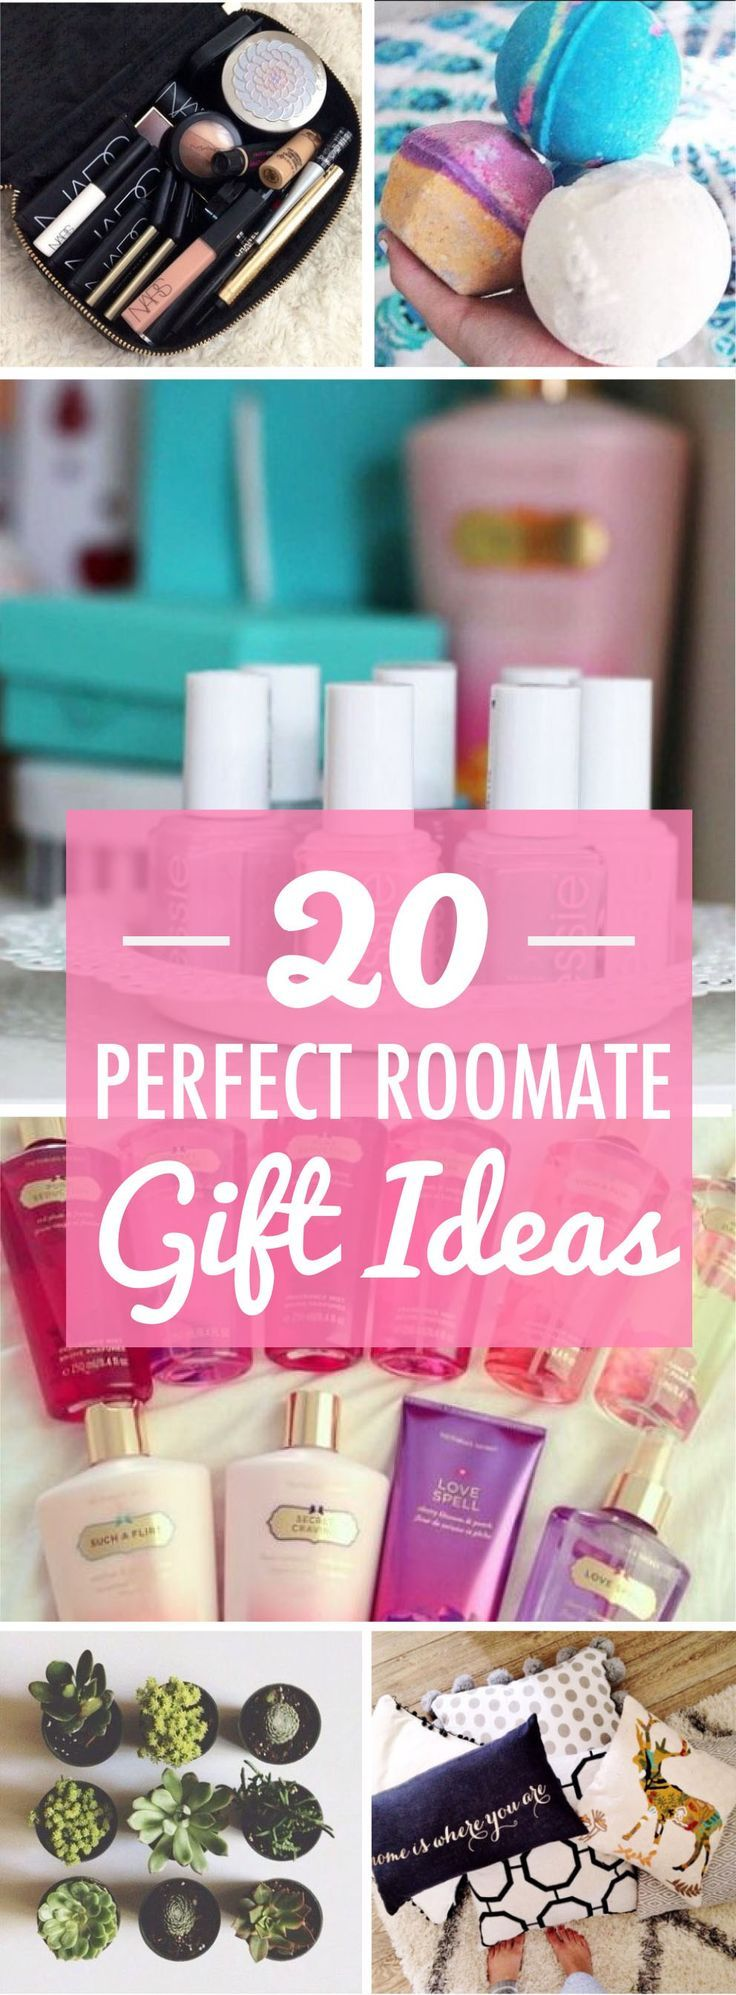 gifts for roommates ideas